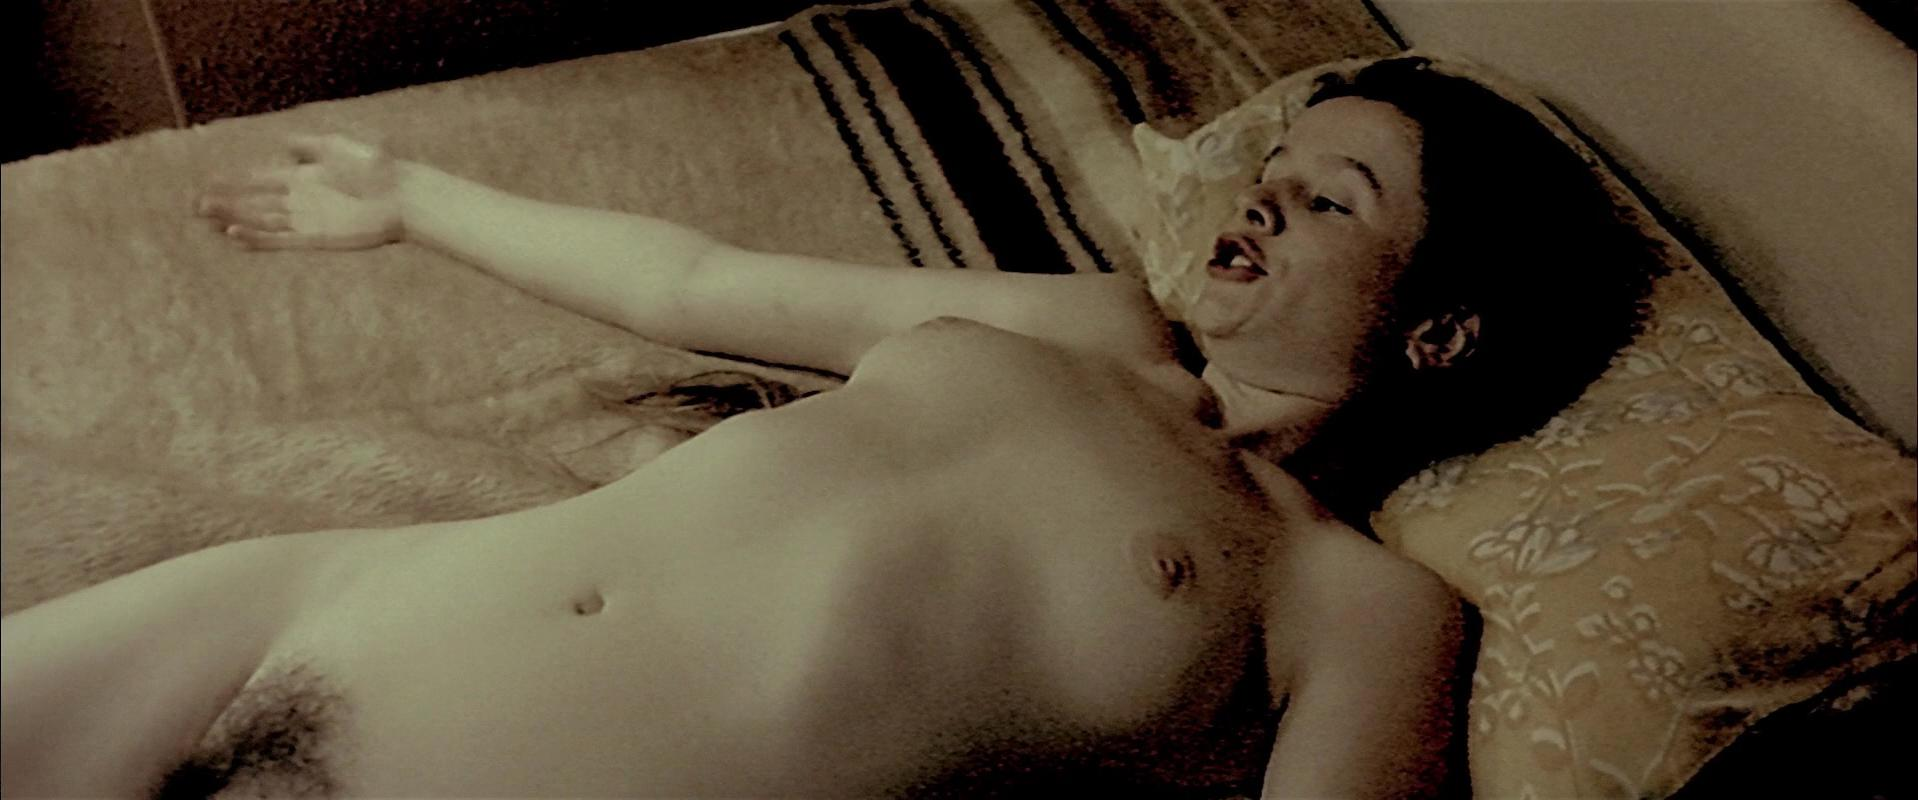 Emily Watson nude - Breaking the Waves (1996)